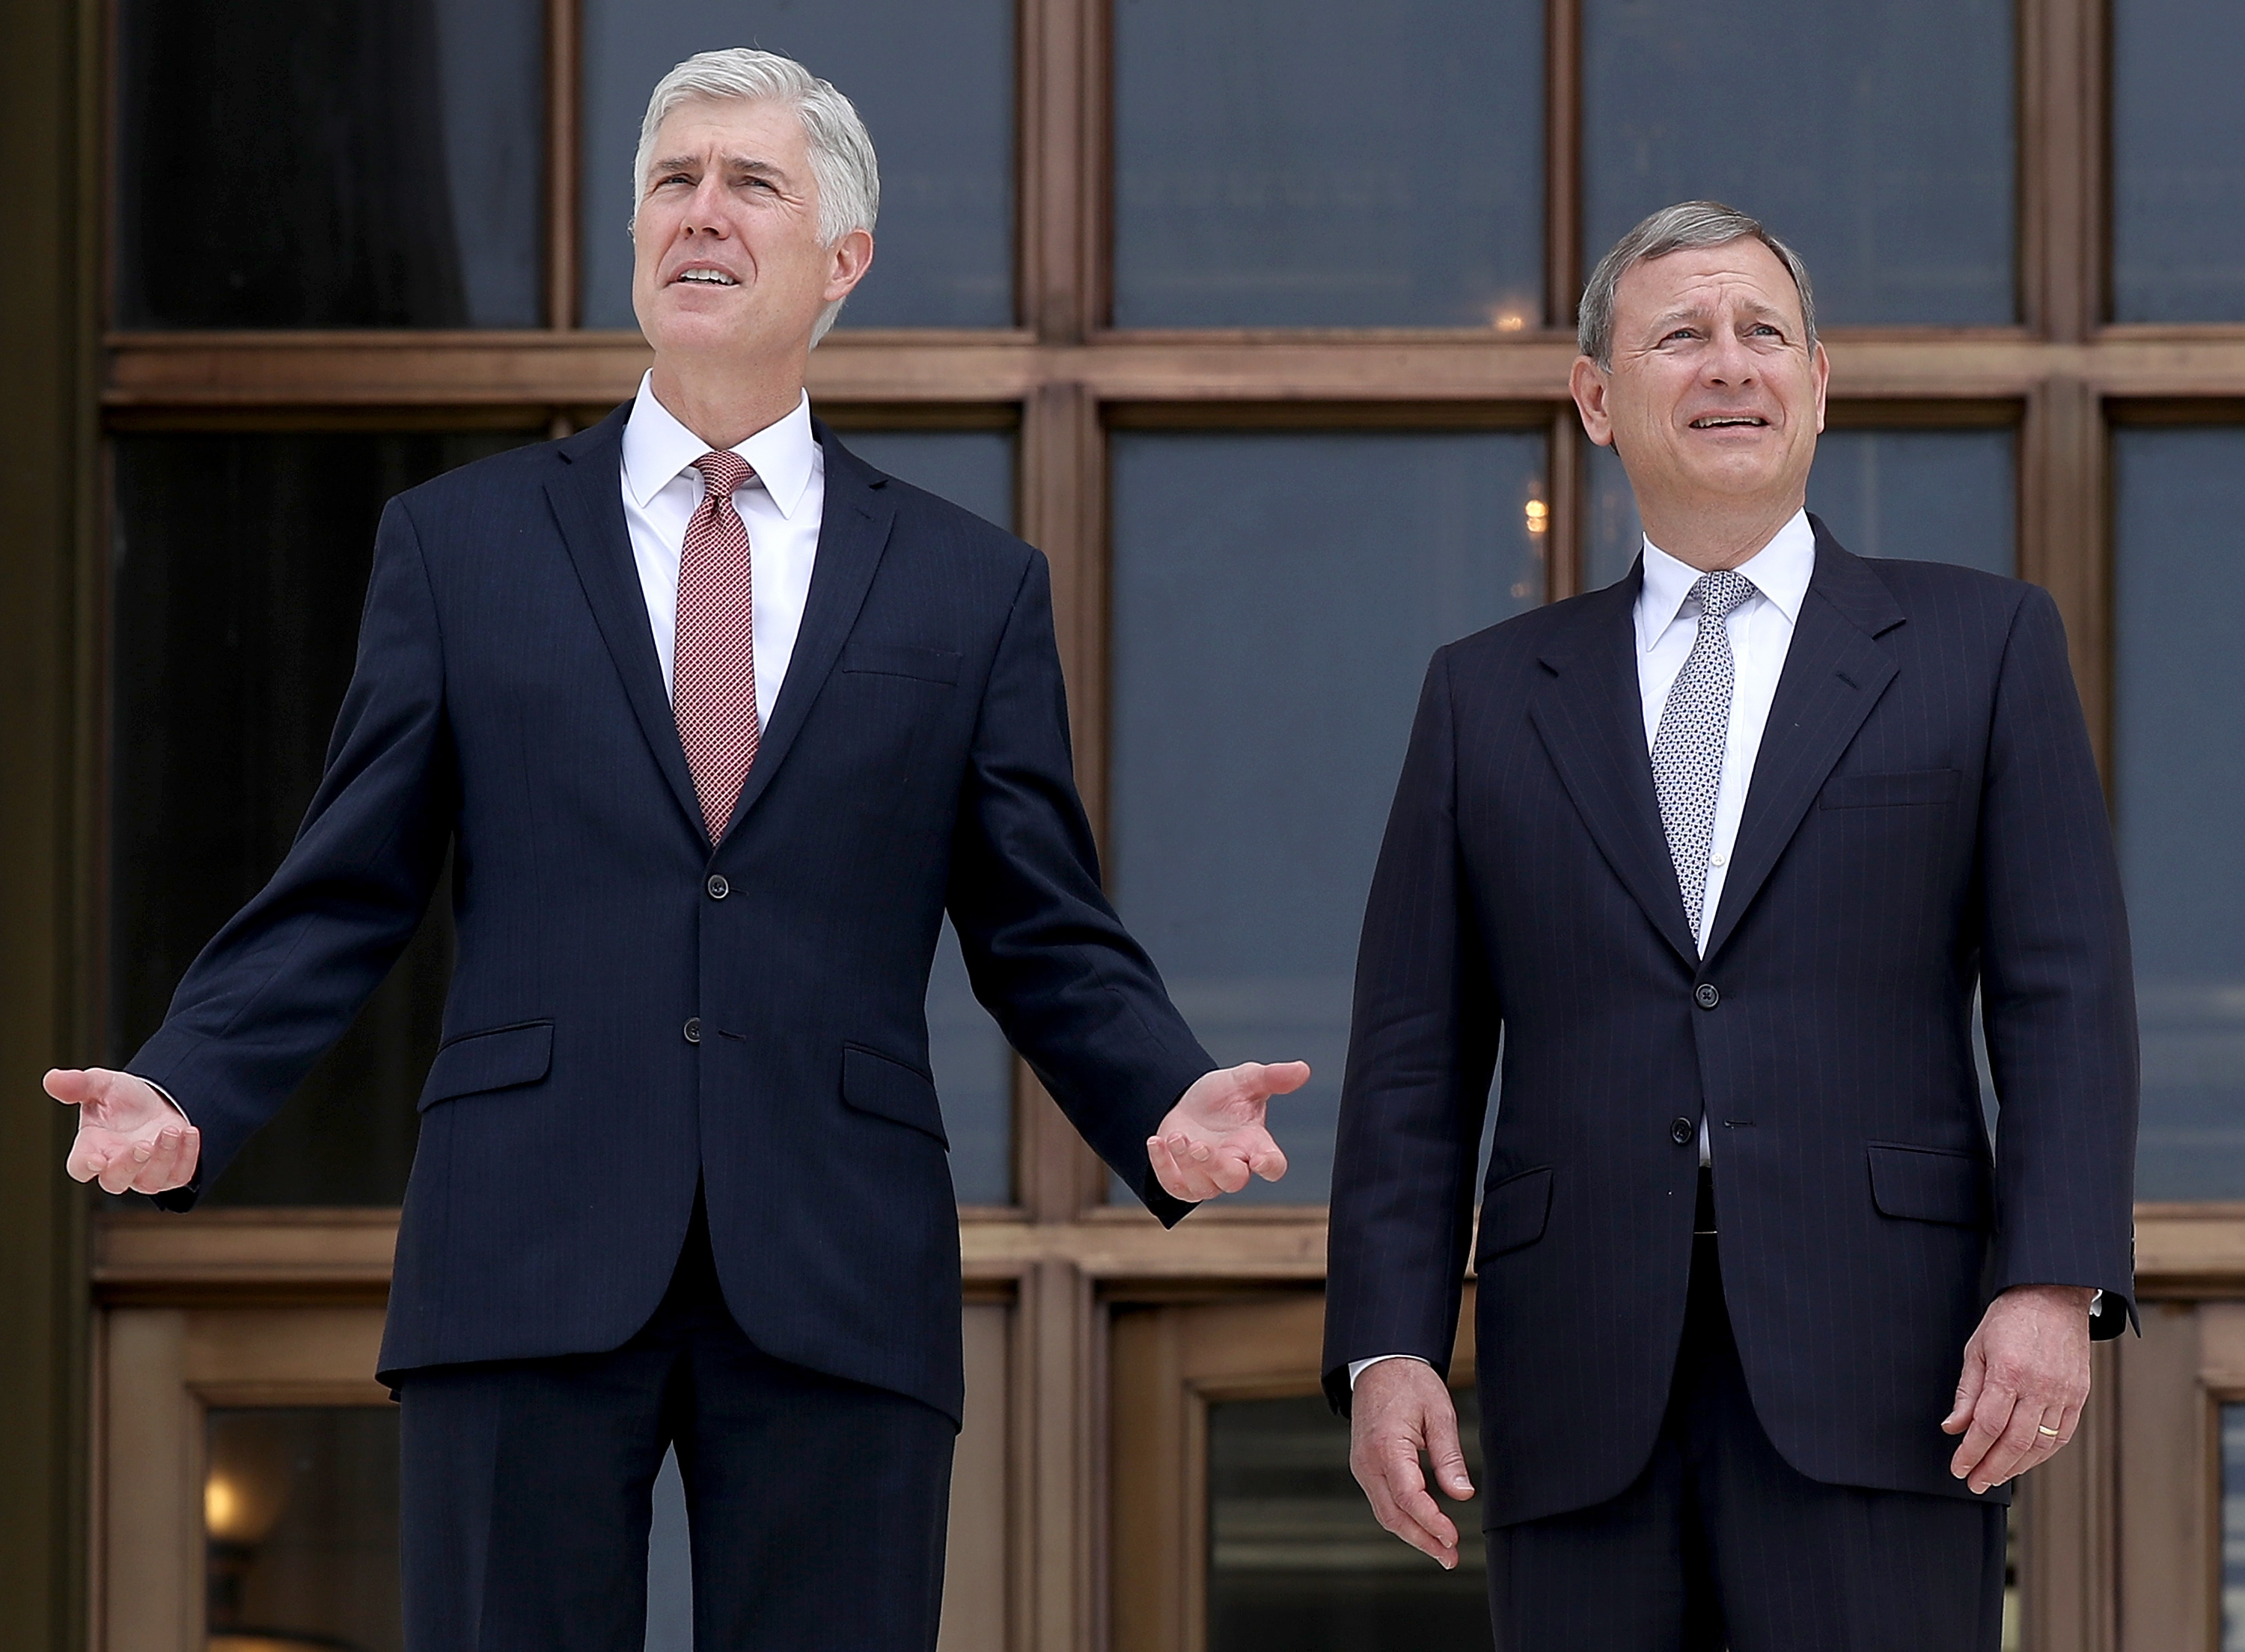 A Conservative Supreme Court Could >> The New More Conservative Supreme Court Is Wreaking Havoc Rolling